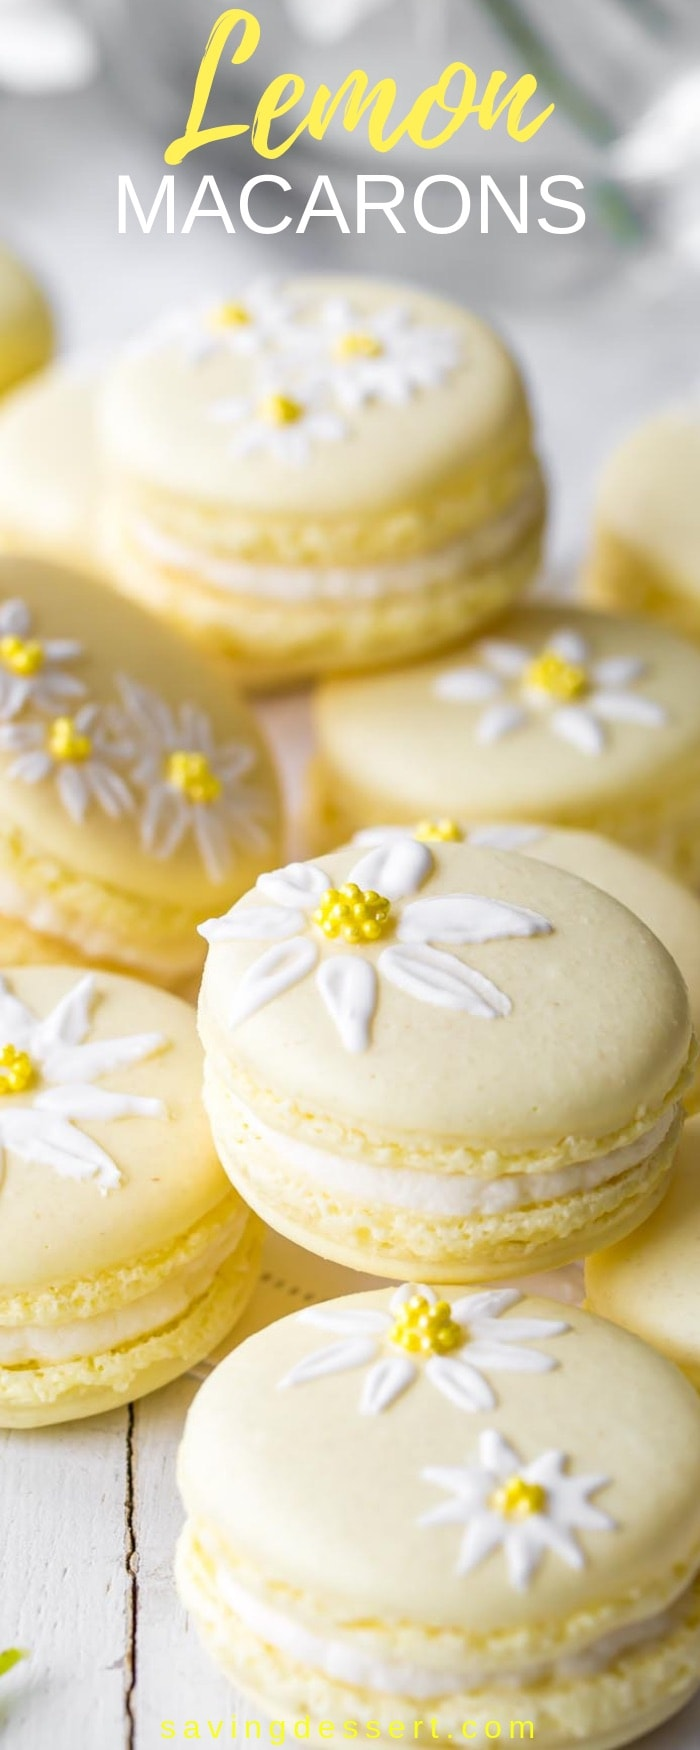 Lemon Macarons - brighten your day with these delicious cookies decorated with a few brushstrokes of royal icing and sprinkles to help usher in the first warm days of spring. #savingroomfordessert #macarons #lemon #cookies #meringuecookies #lemonmacarons #Italianmacarons #decoratedmacaron #macaron